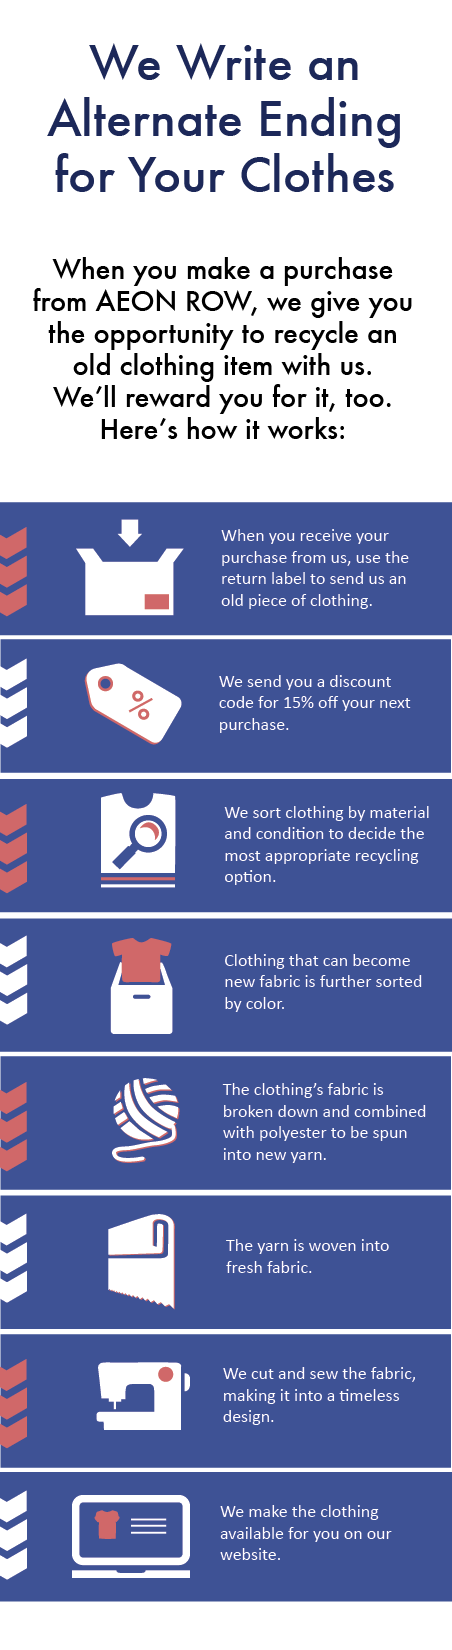 We write an alternate ending for your clothes. When you make a purchase from AEON Row, we give you the opportunity to recycle an old clothing item with us. We'll reward you for it, too. Here's how it works: When you receive your purchase from us, use the return label to send us an old piece of clothing. We send you a discount code for 15% off your next purchase. We sort clothing by material and condition to decide the most appropriate recycling option. Clothing that can become new fabric is further sorted by color. The clothing's fabric is broken down and combined with polyester to be spun into new yarn. The yarn is woven into fresh fabric. we cut and sew the fabric, making it into a timeless design. We make the clothing available for you on our website.